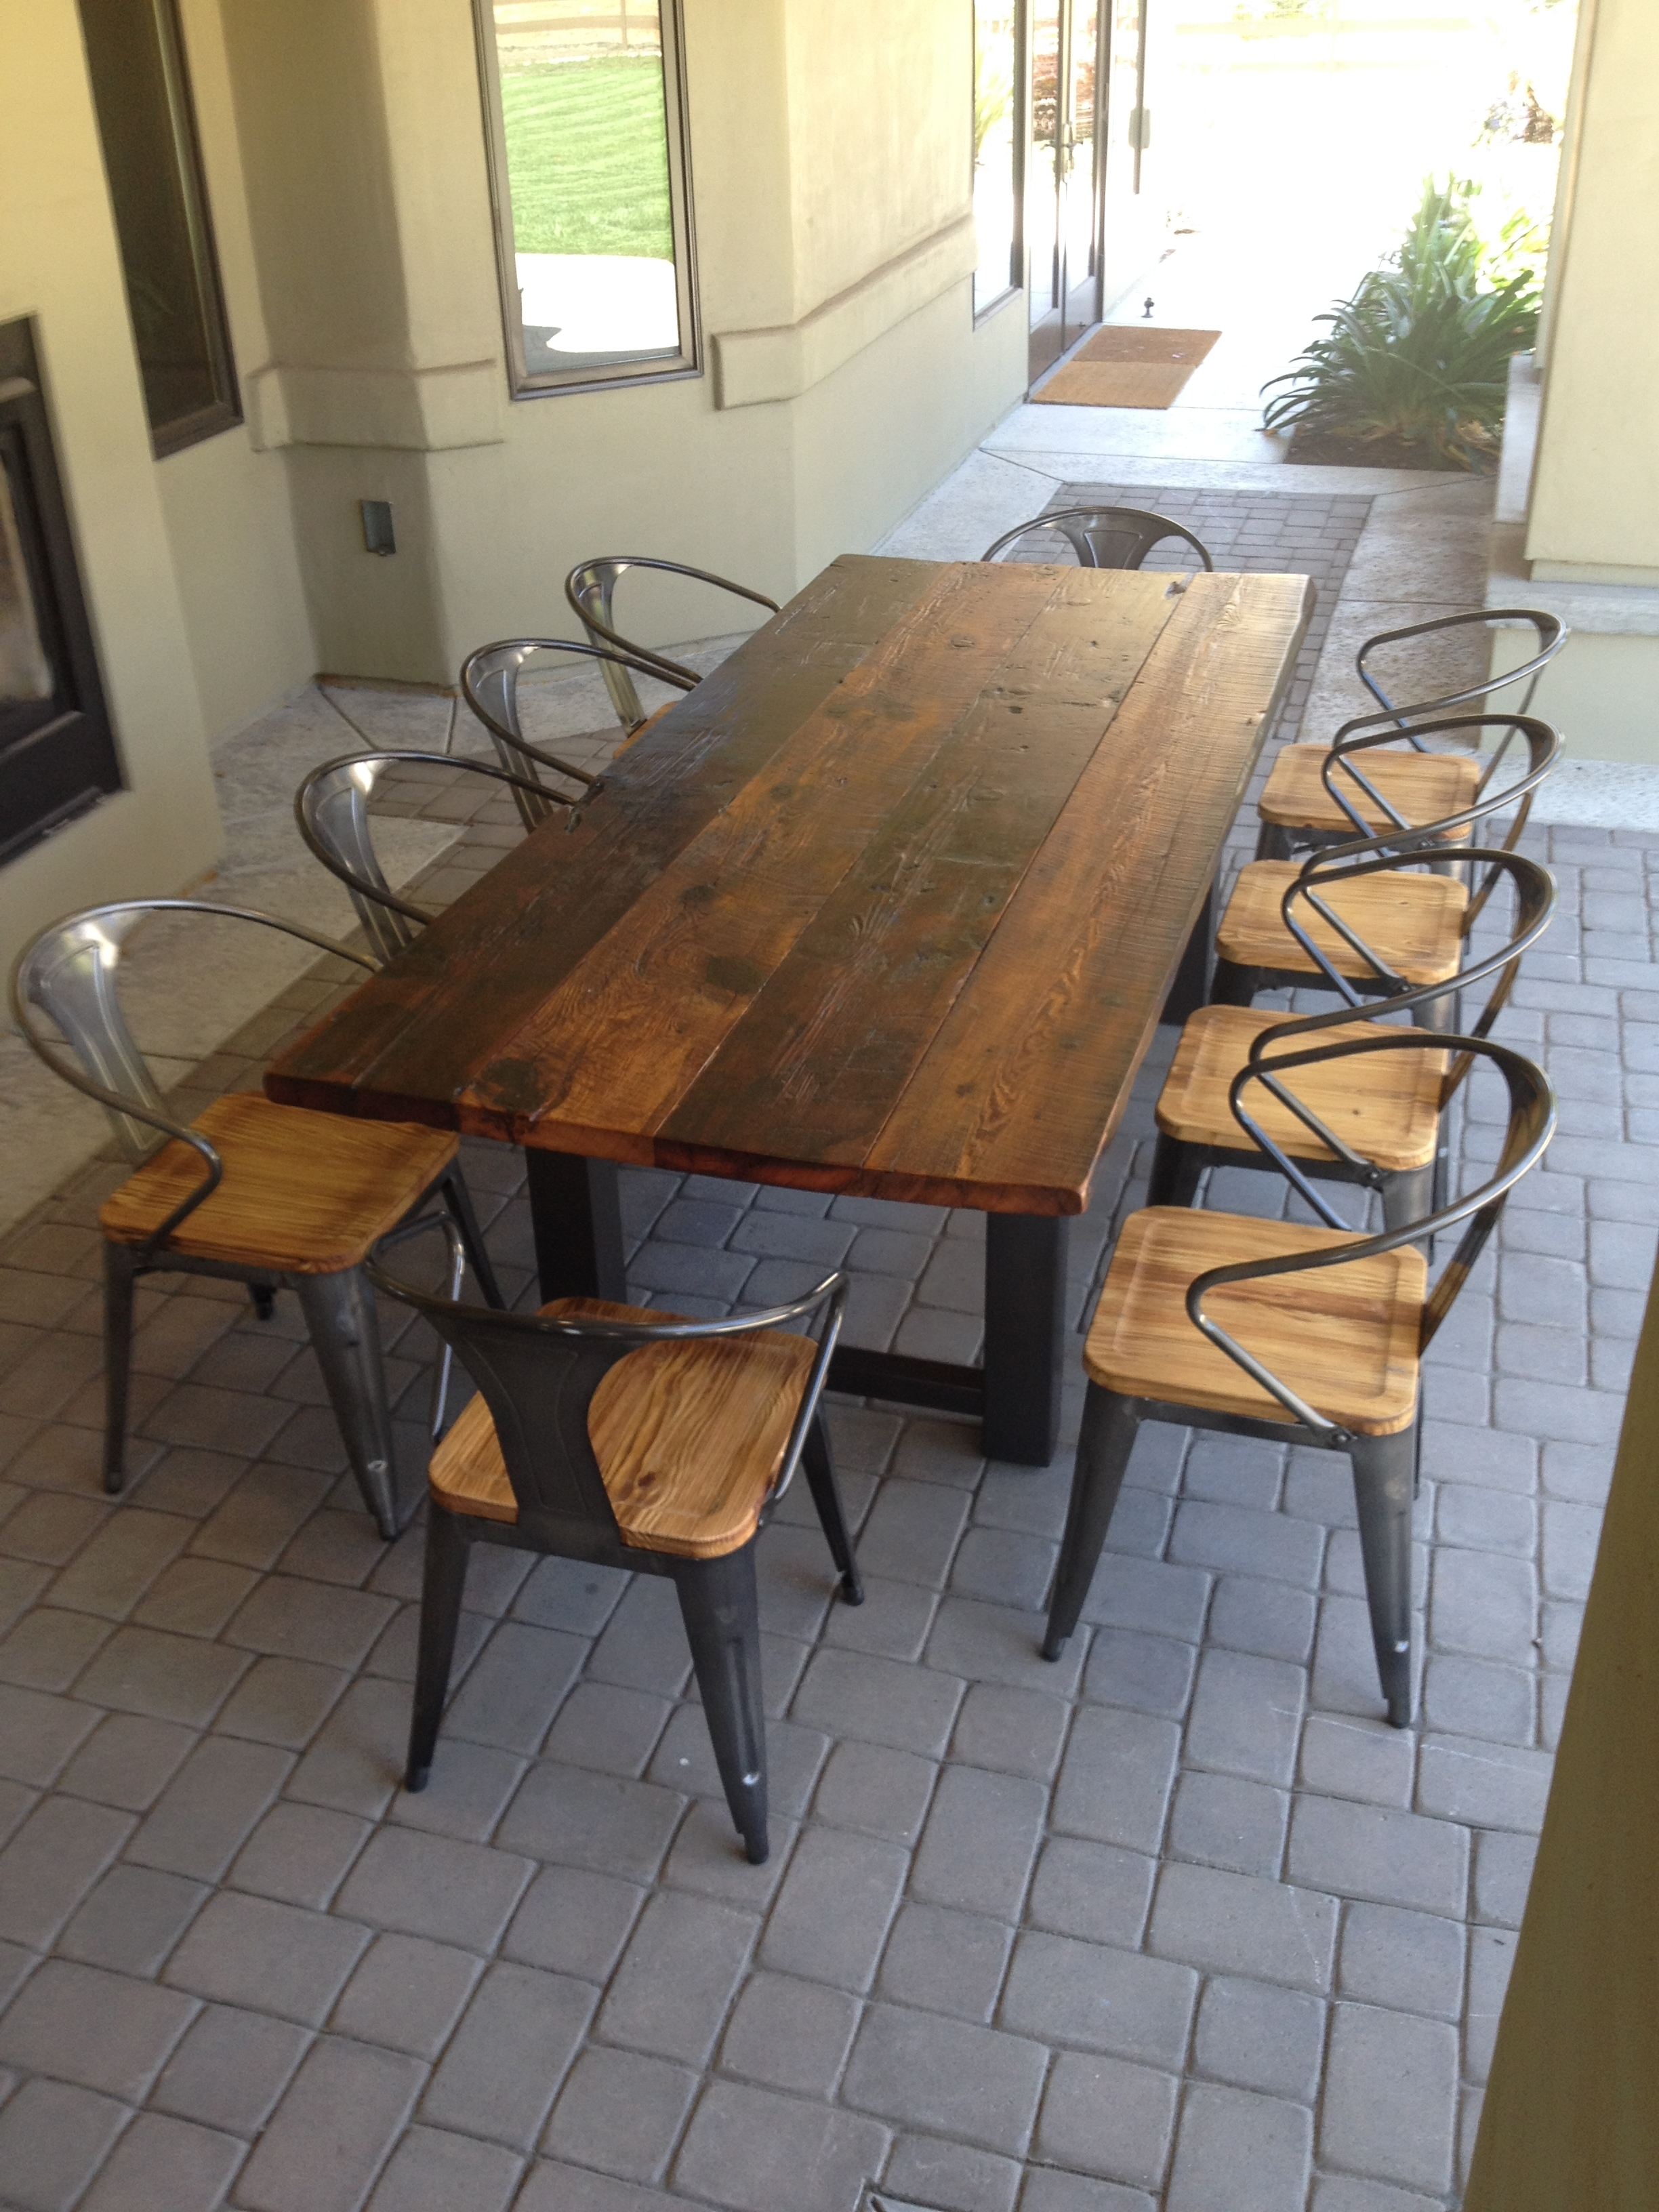 2018 Garden Dining Tables And Chairs throughout Garden Dining Tables - Ujecdent